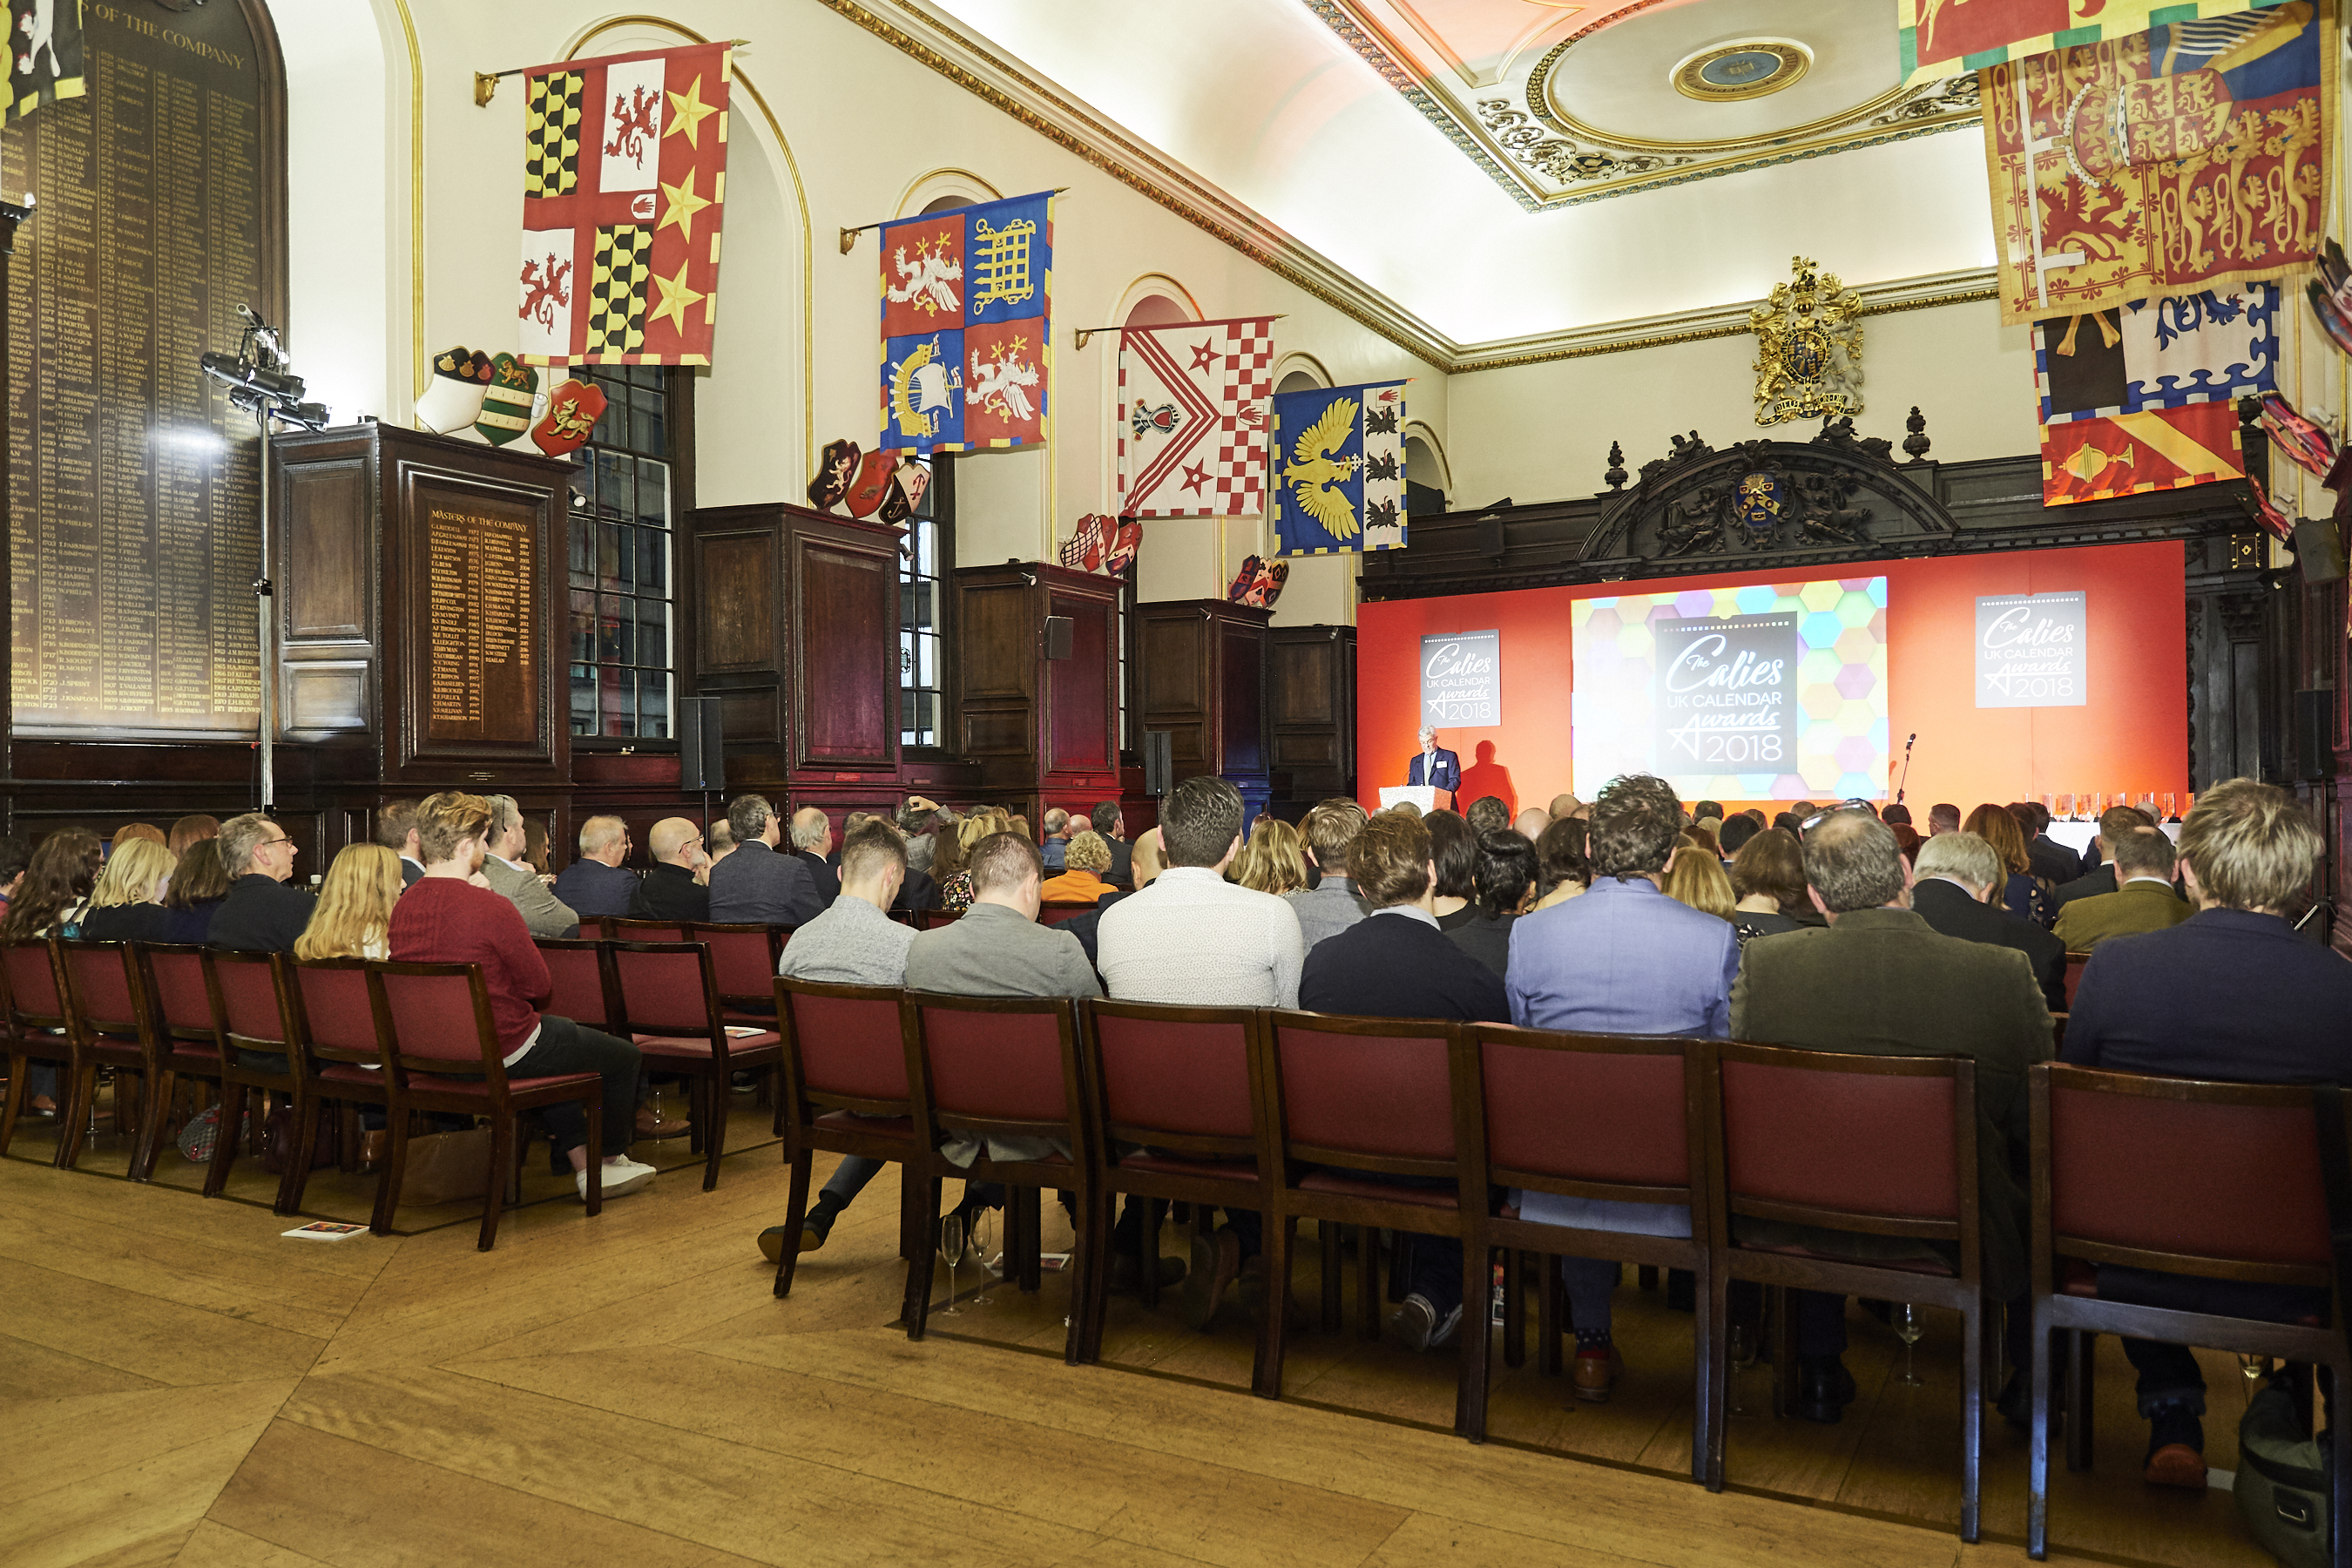 Above: The Calies awards event will take place once again at the historic Stationers' Hall in St Pauls, London.